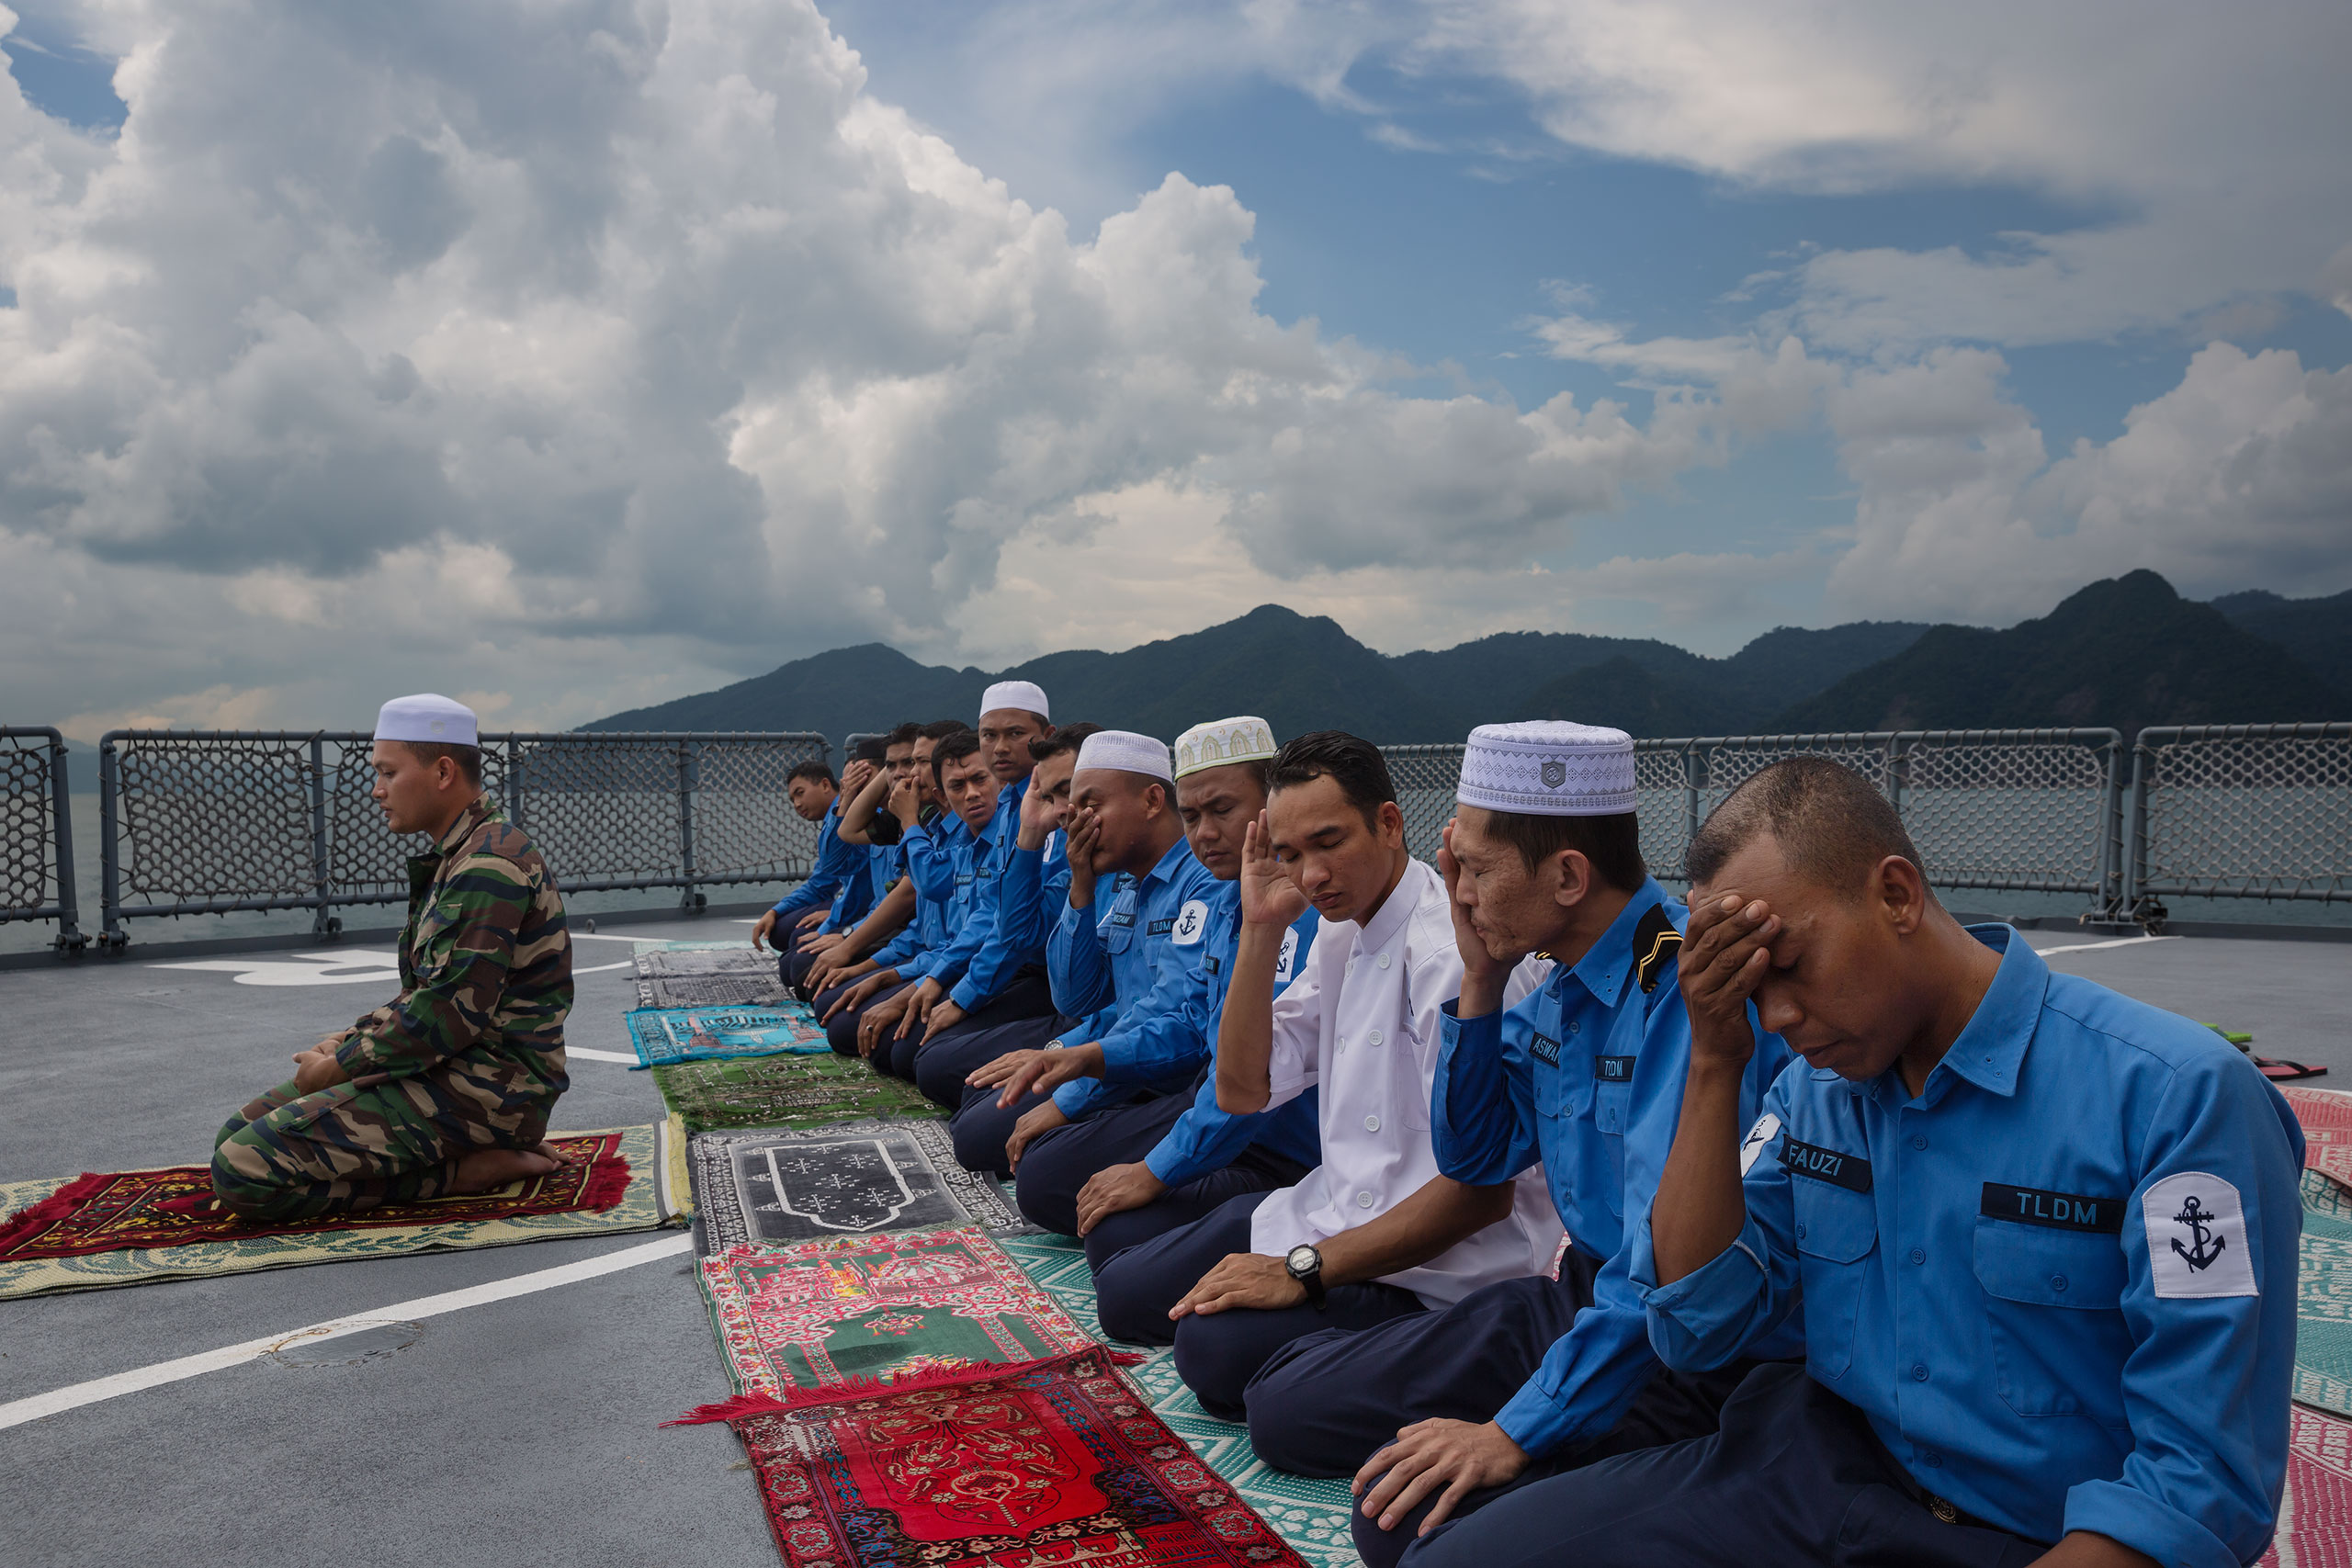 Malaysian Navy officers pray on a navy ship out of Langkawi, an island in the Andaman Sea. They are on routine patrol looking for boats with Rohingya refugees in waters neighboring Thailand.From  The Plight of the Rohingya by James Nachtwey